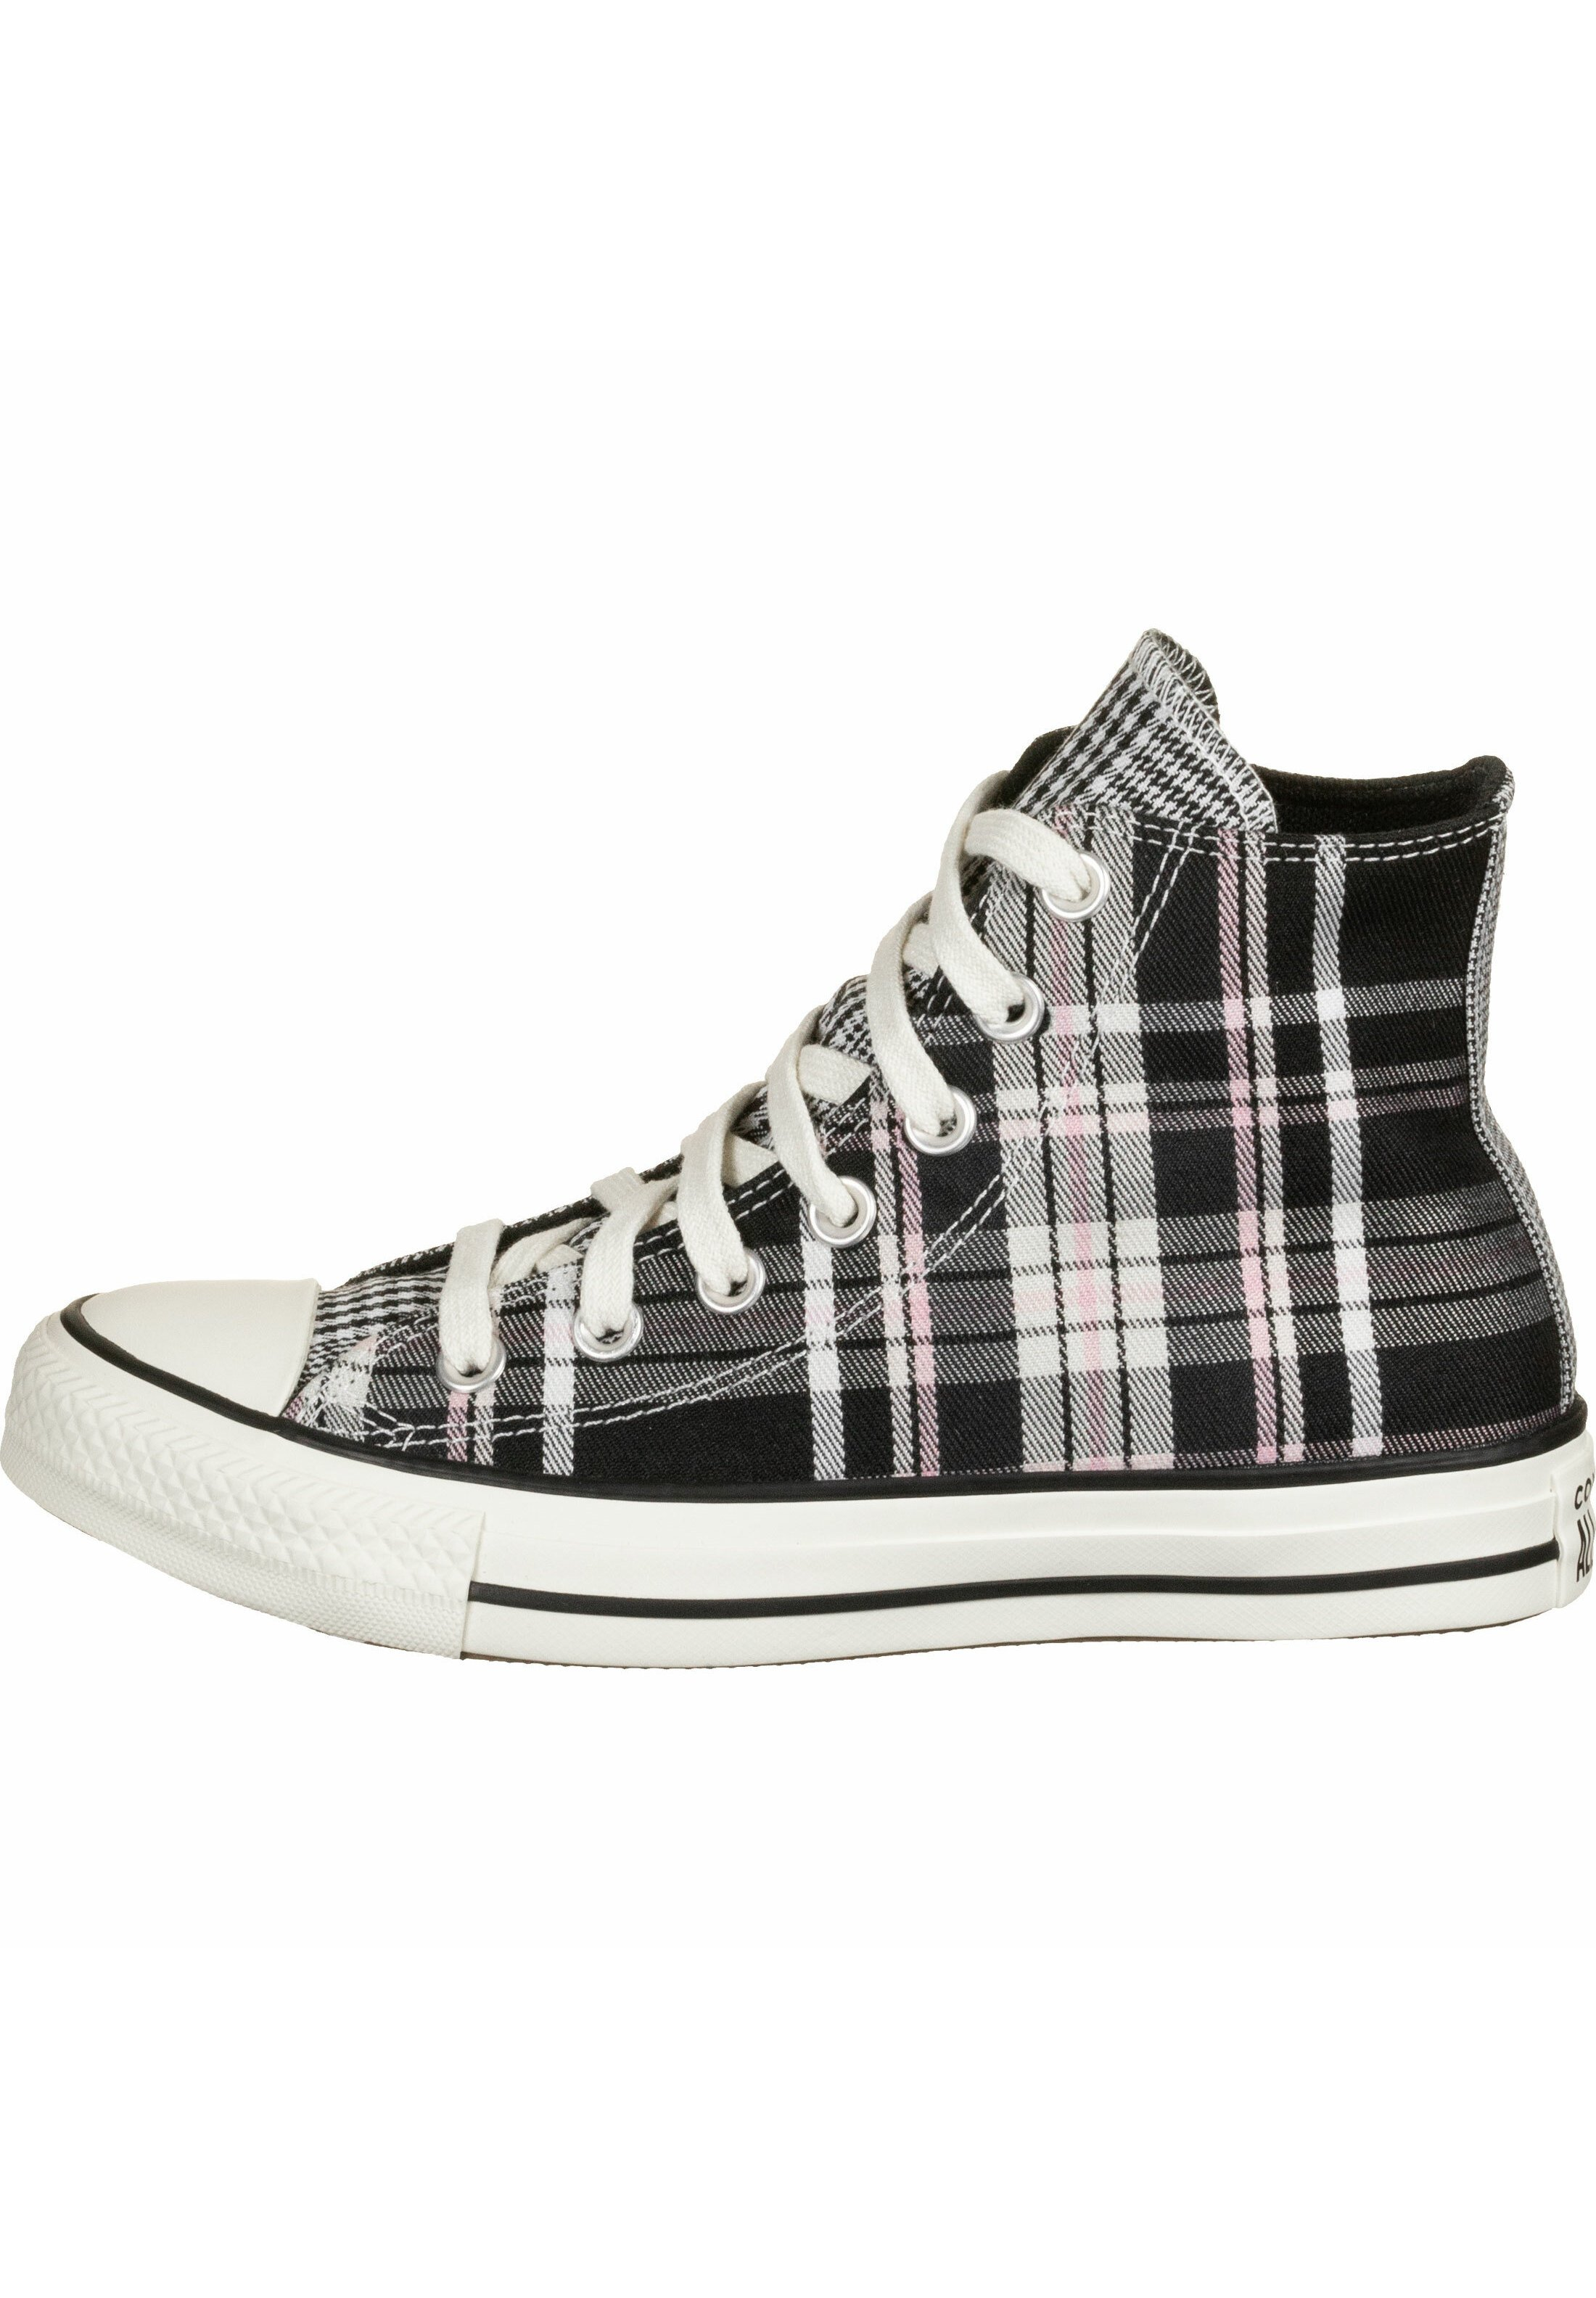 Converse Chuck Taylor All Star - Sneakers High Black/white/egret